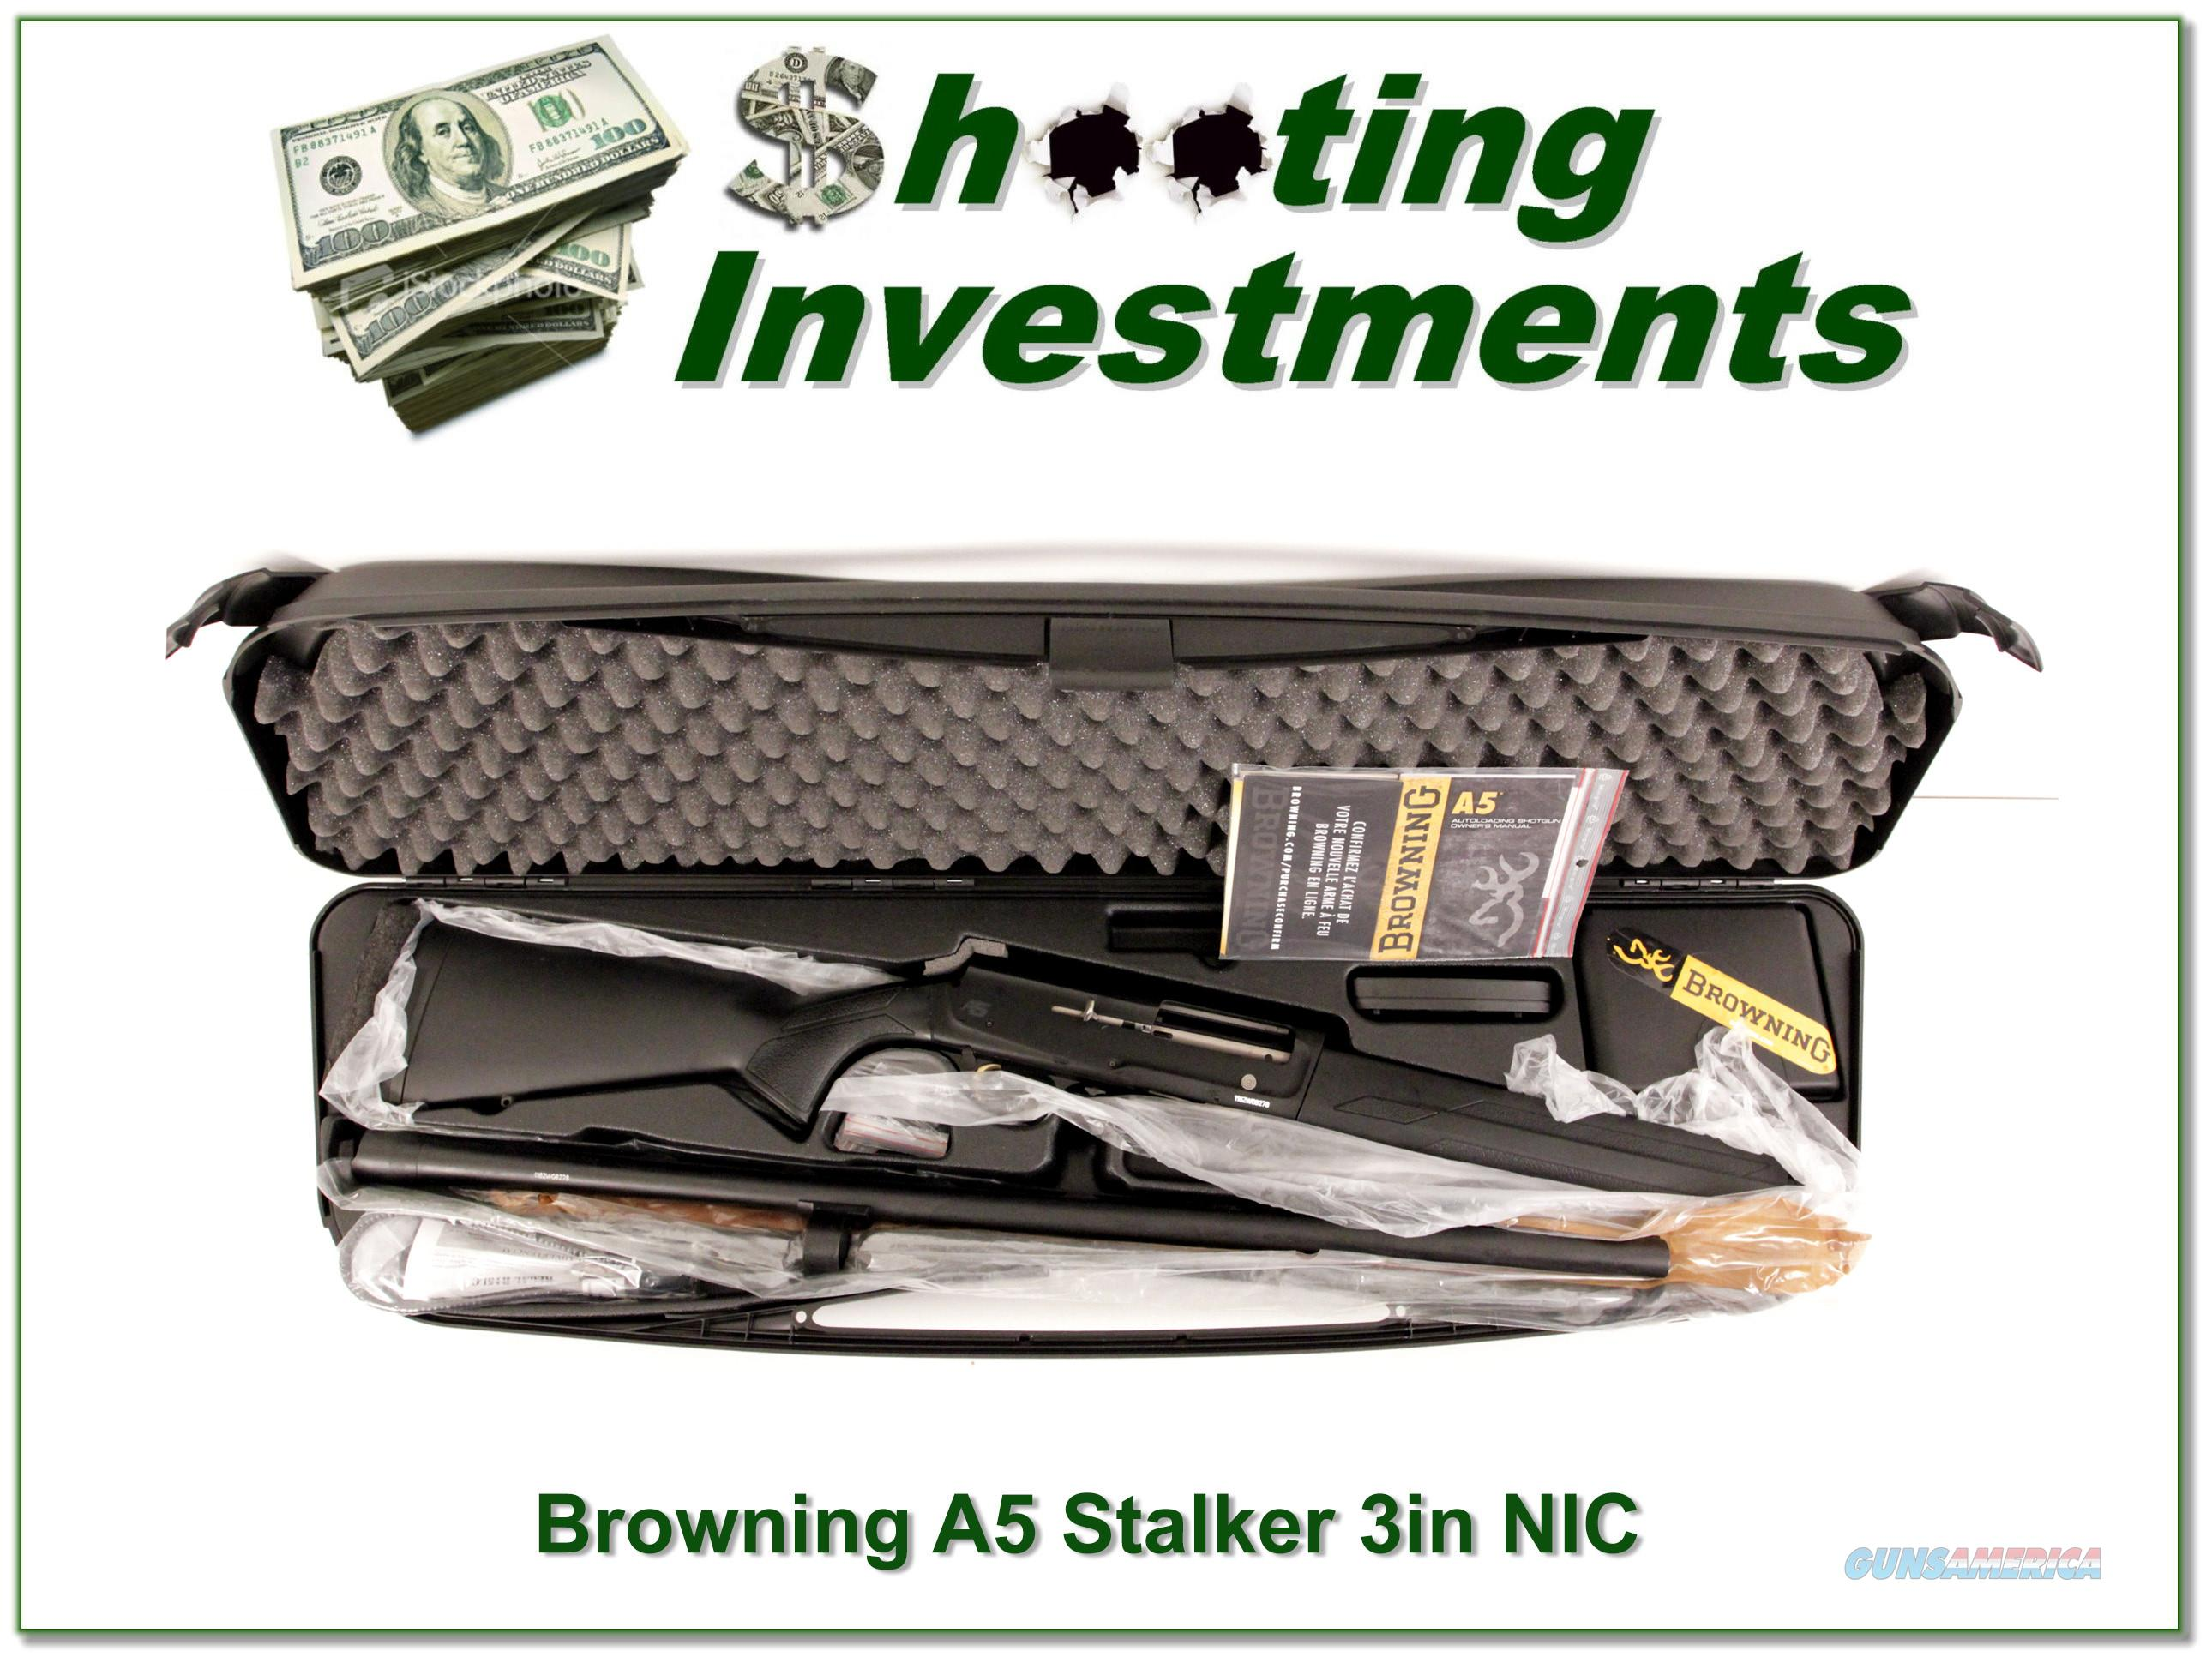 Browning A5 Stalker as new 30in in case   Guns > Shotguns > Browning Shotguns > Autoloaders > Hunting